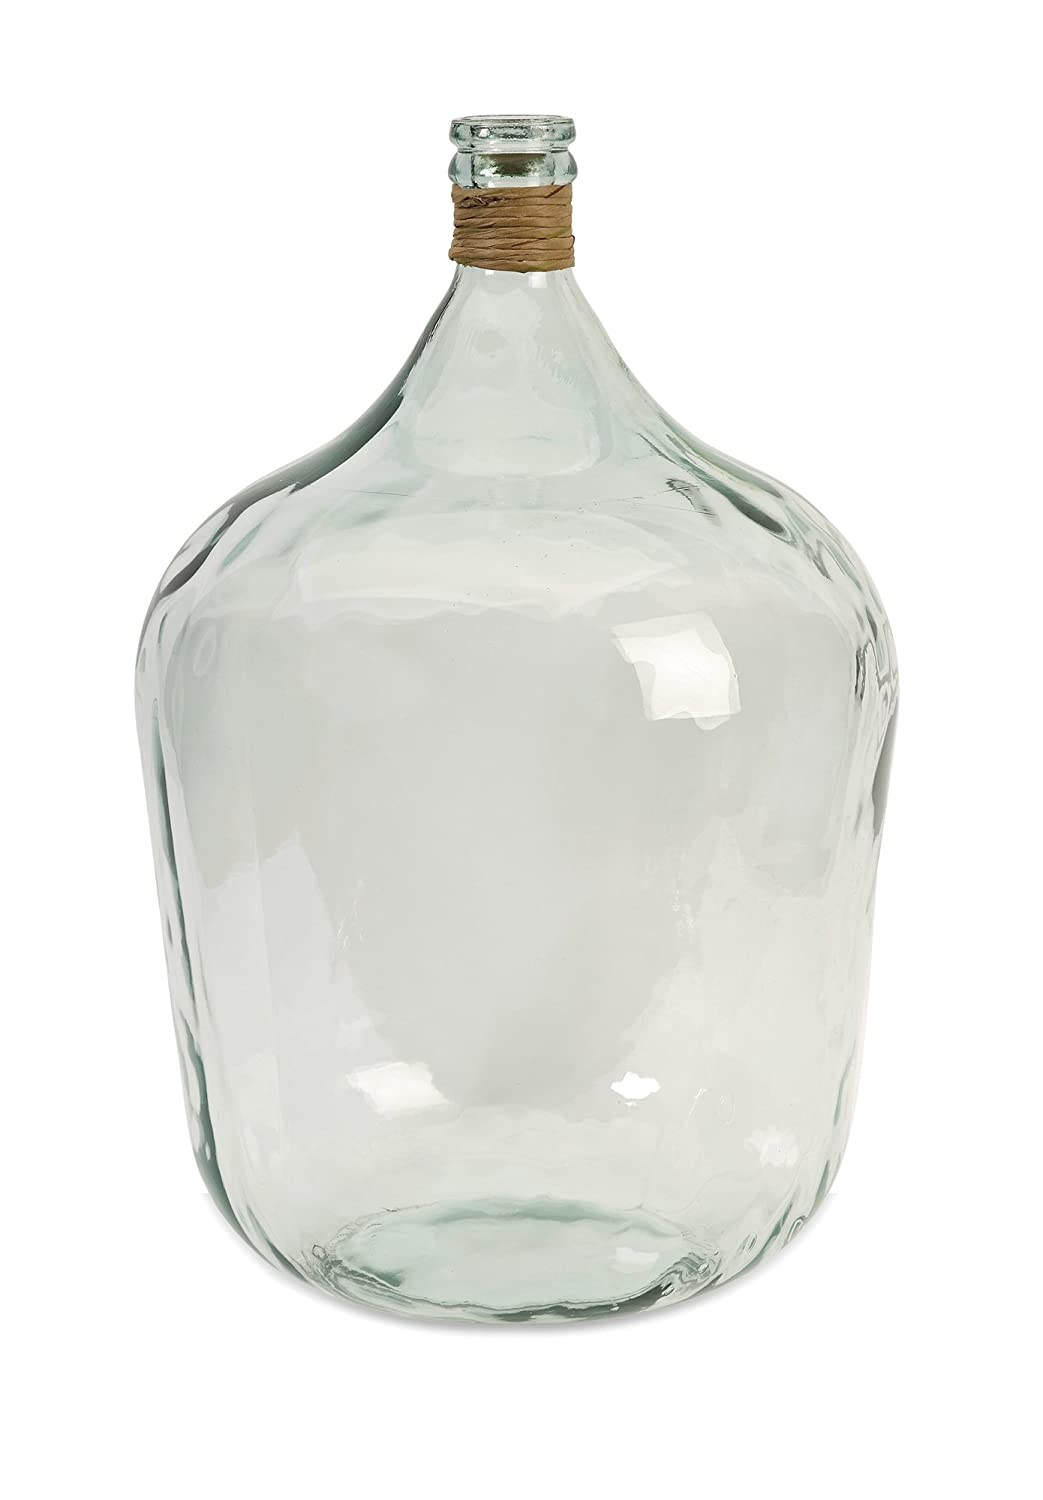 Parisian bottle vase jug